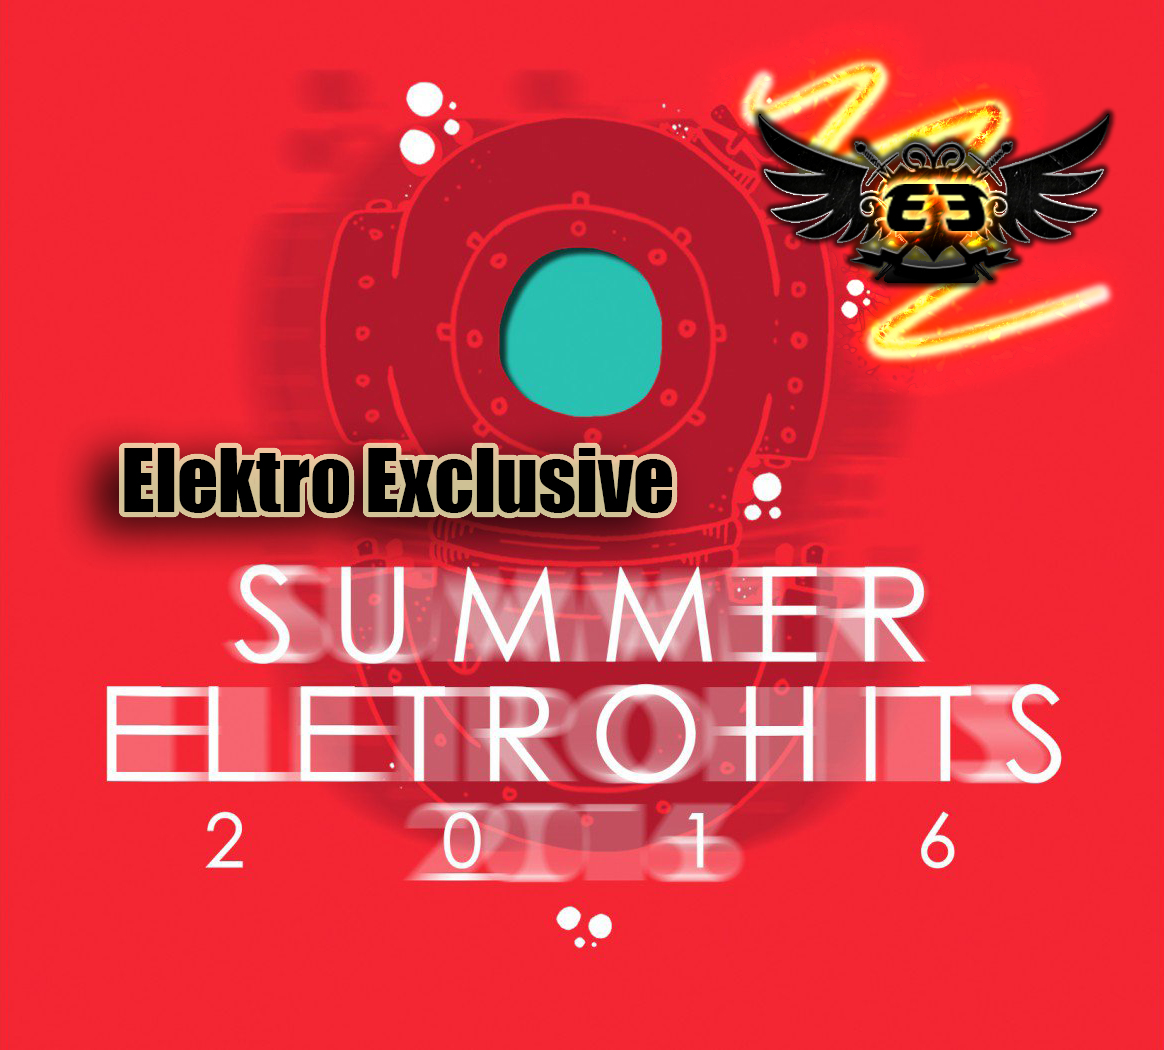 cd summer eletrohits 7 gratis mp3